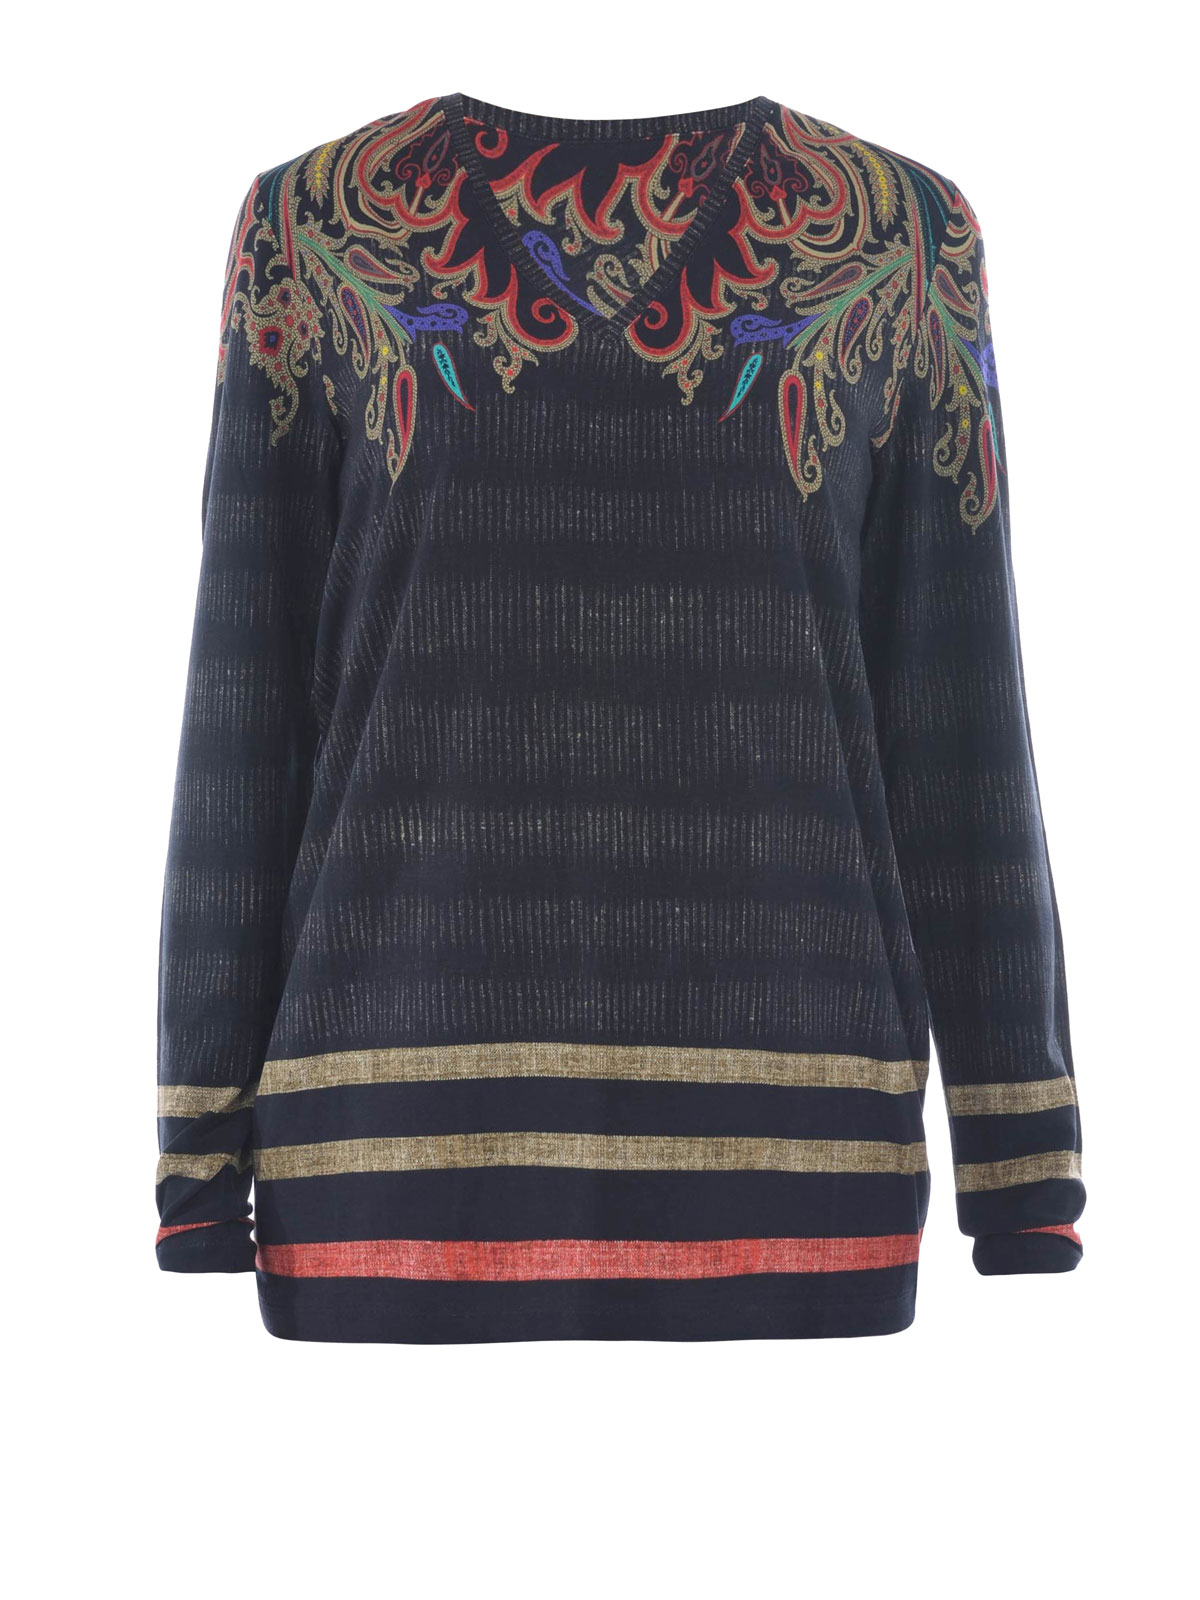 Paisley printed jersey t shirt by etro t shirts ikrix for Who prints t shirts